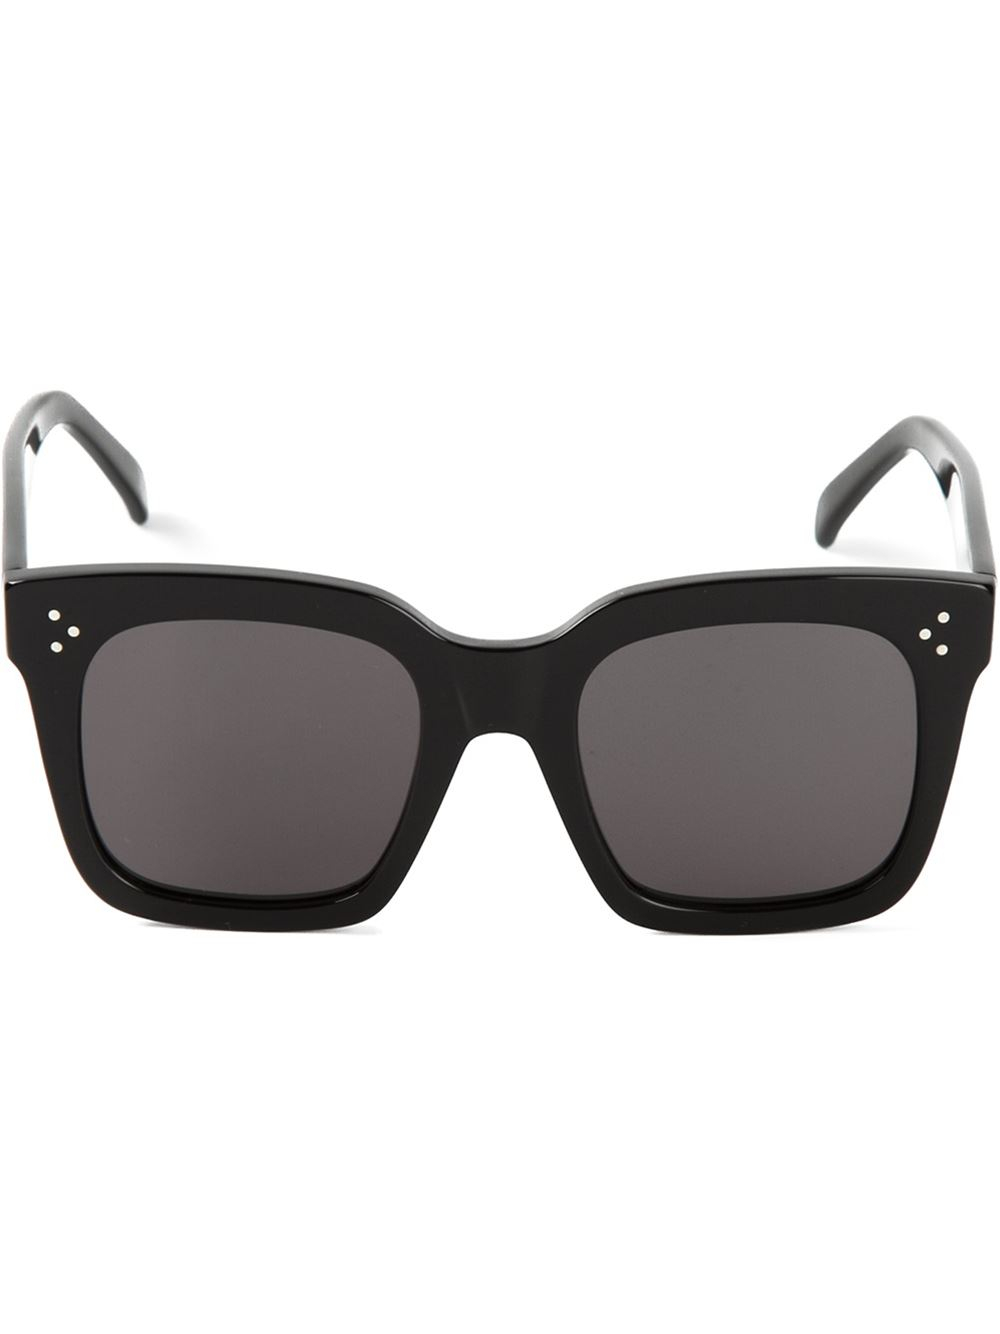 C 233 Line Tilda Sunglasses In Black Lyst